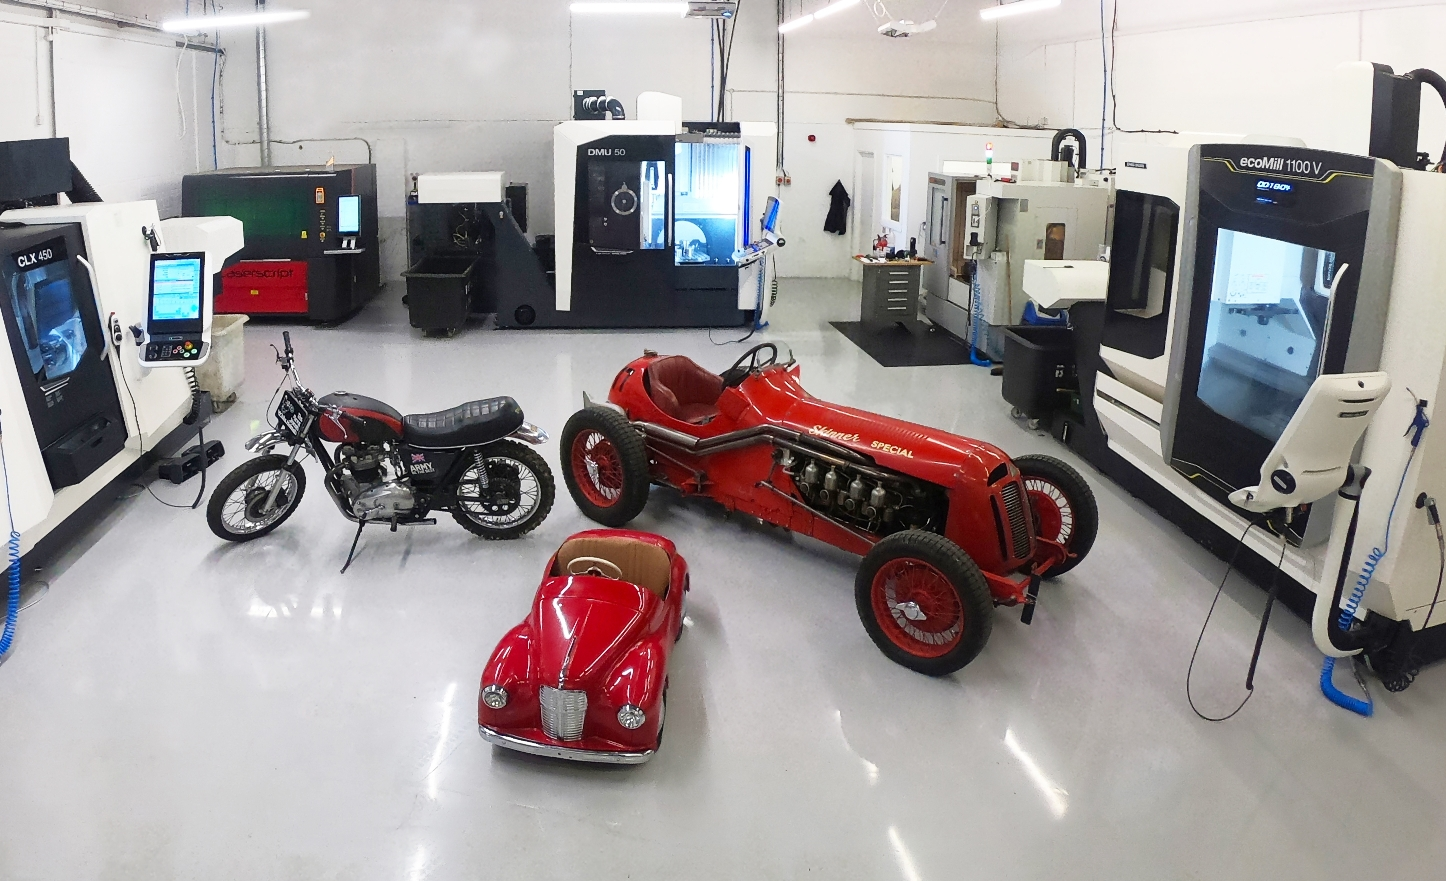 Modern manufacturing and test equipment ensure success for retro automotive products